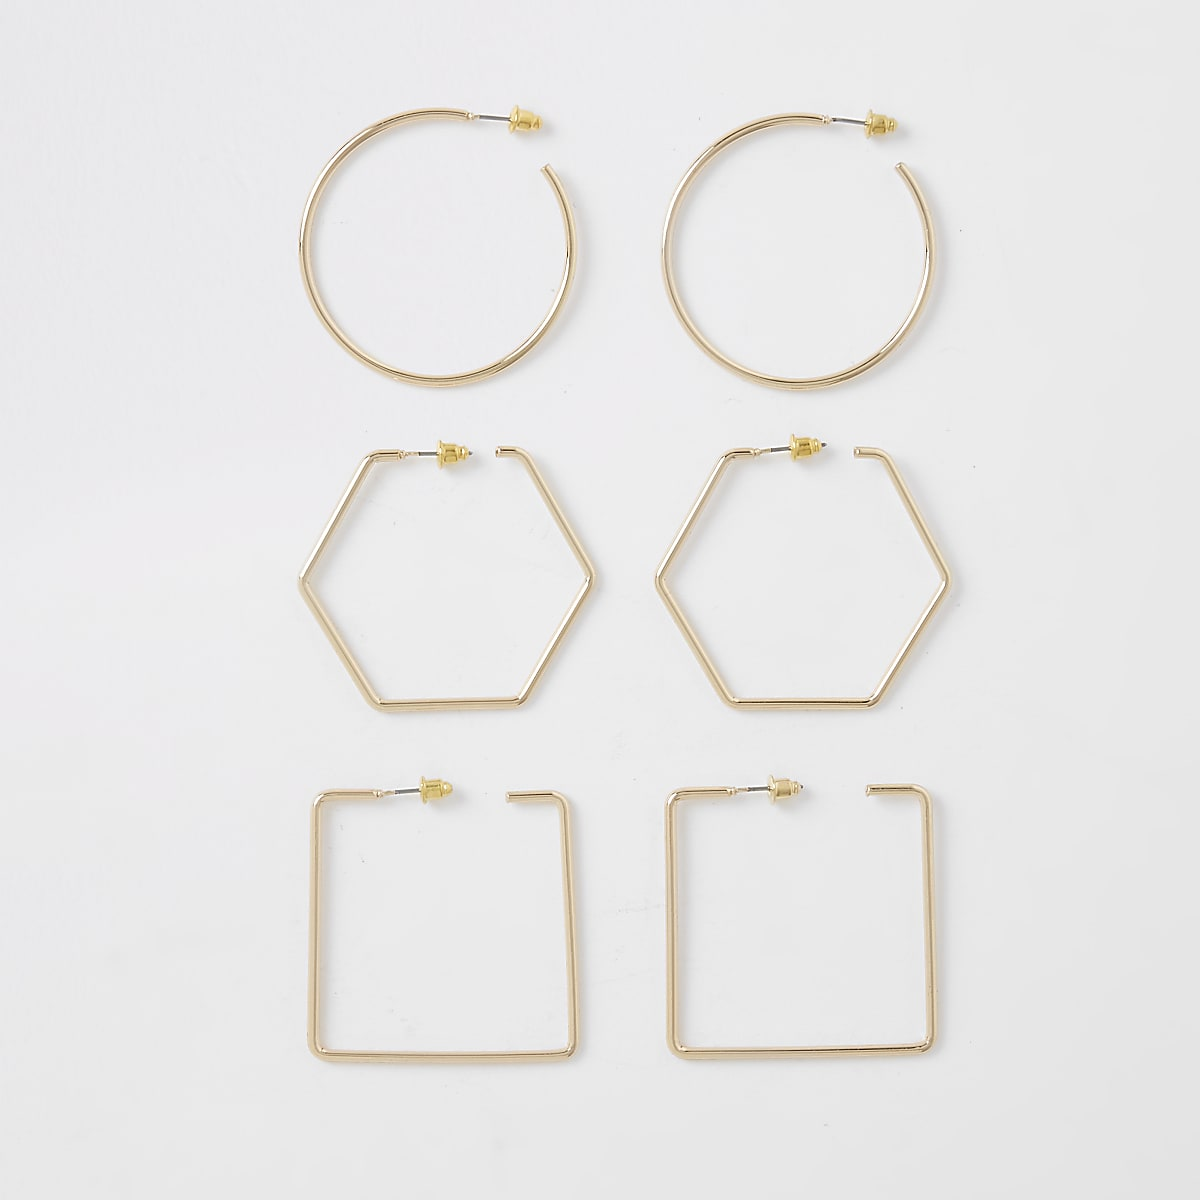 Gold color mixed shapes hoop earrings pack